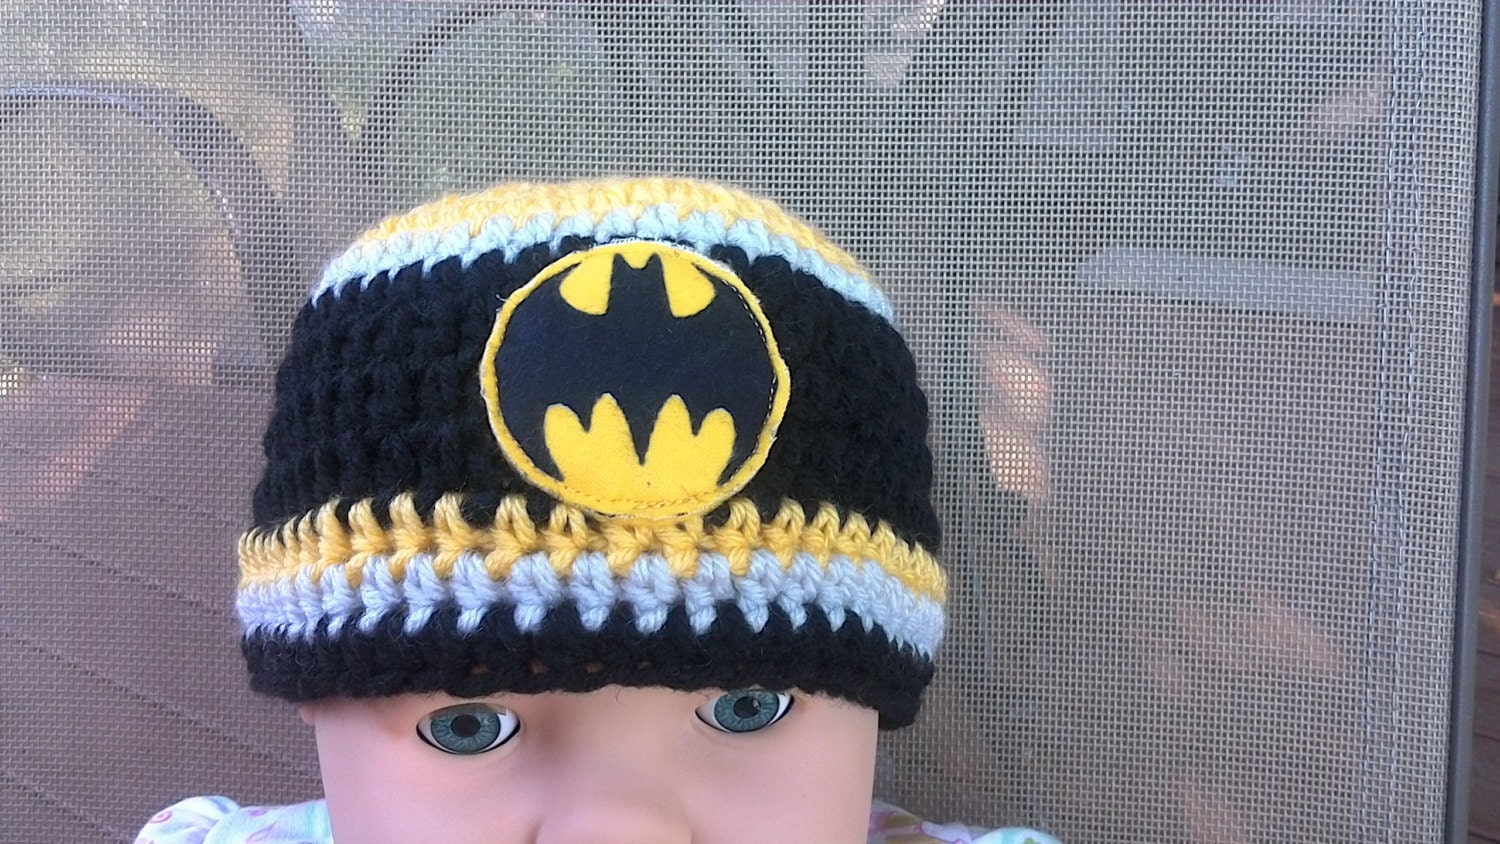 974206dbae1 Batman baby hat toddler hat winter hat warm hat NFL hat